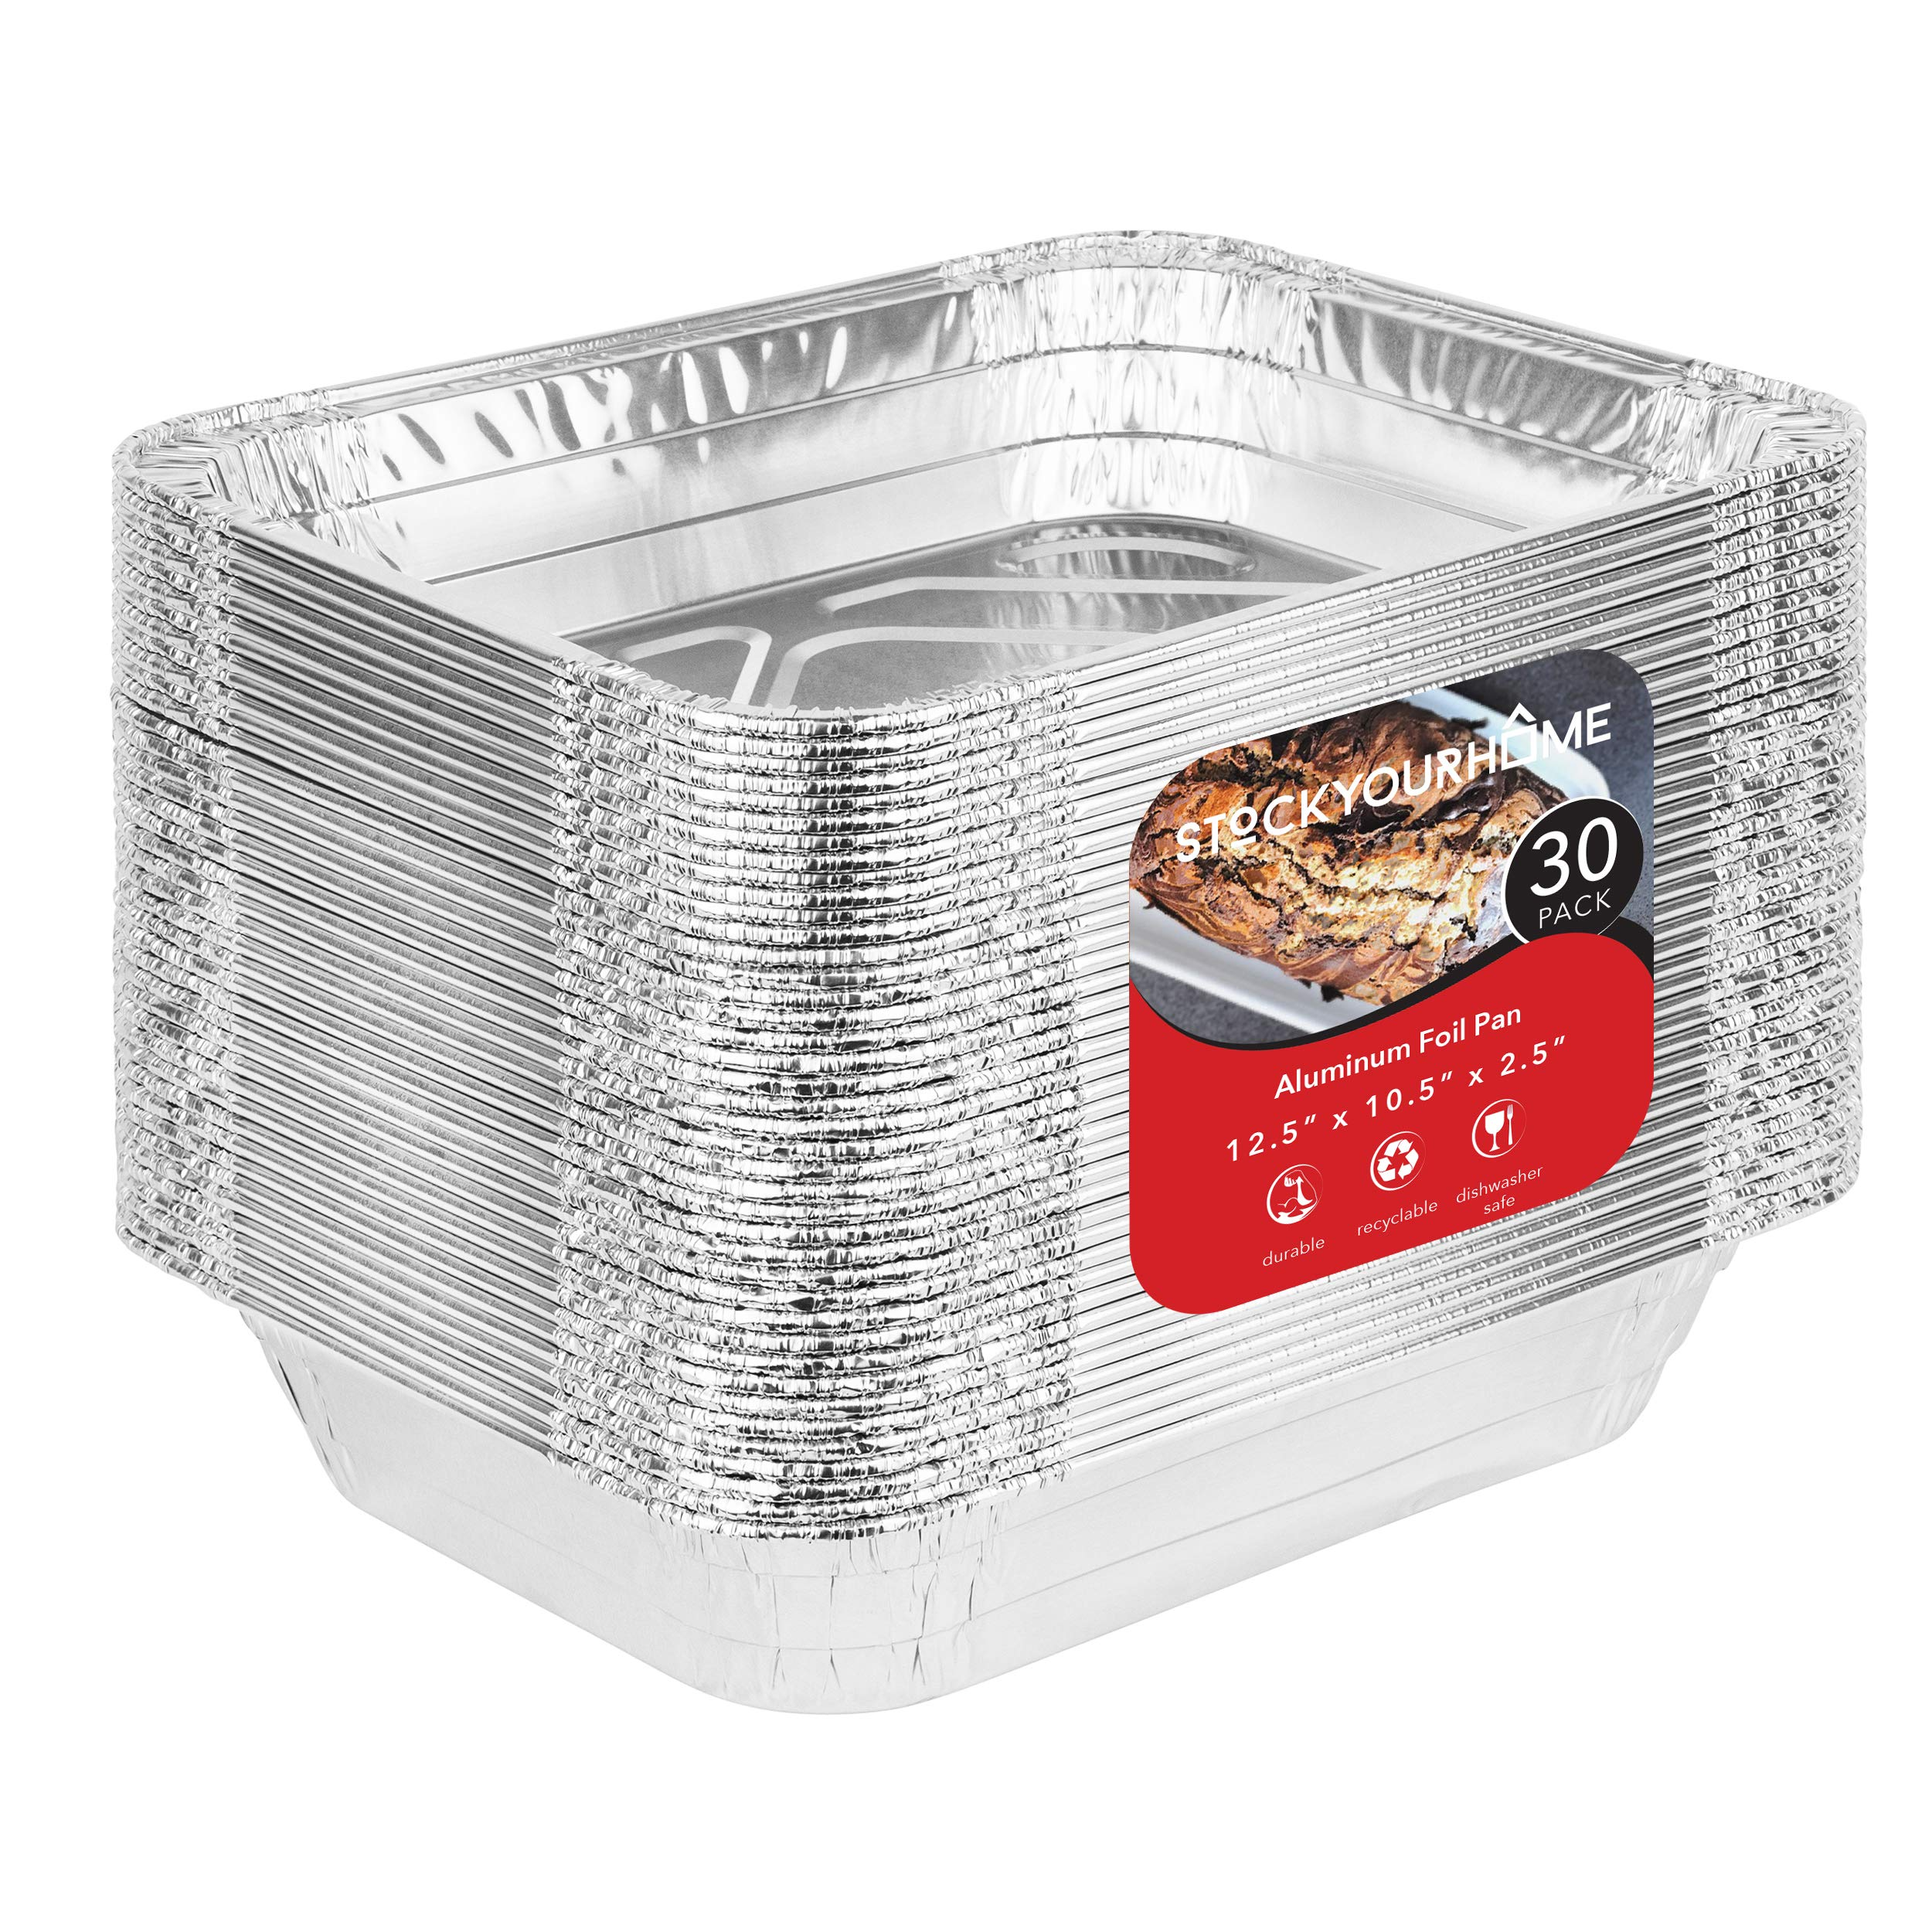 9x13 Disposable Aluminum Foil Baking Pans (30 Pack) - Half Size Steam Table Deep Pans - Aluminum Trays Great for Baking, Cooking, Heating, Storing, Prepping Food - 12.5'' x 10.25'' x 2.5''